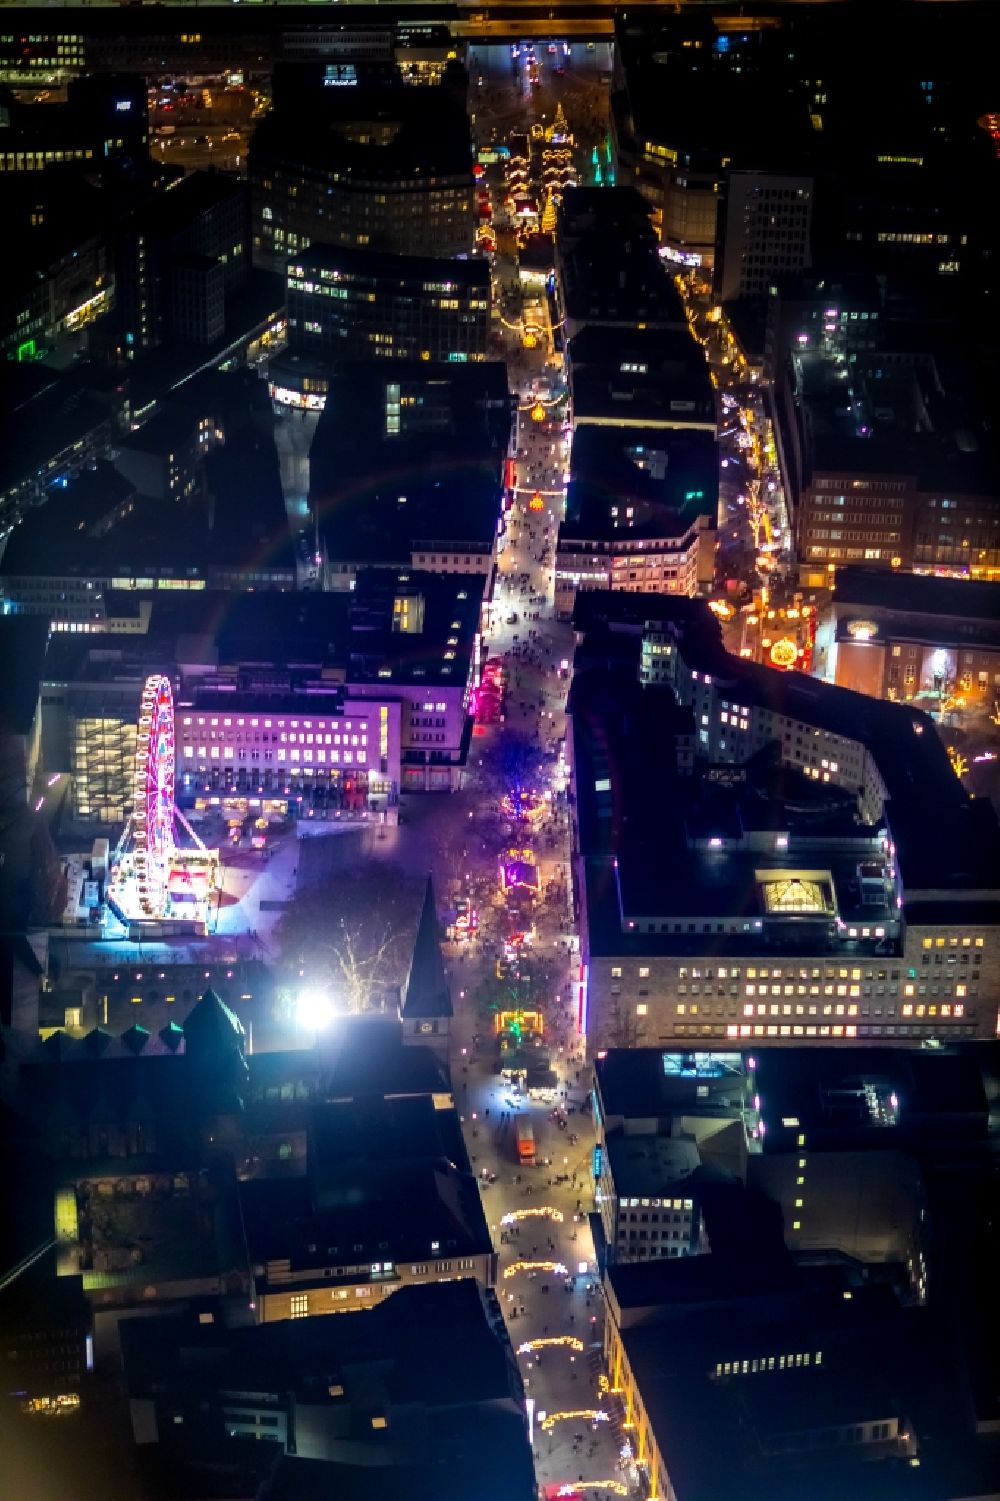 Aerial image at night Essen - Night lighting christmas - event site in Essen in the state North Rhine-Westphalia, Germany. Further information at: EMG - Essen Marketing GmbH, Stadt Essen, Stadtwerke Essen AG.